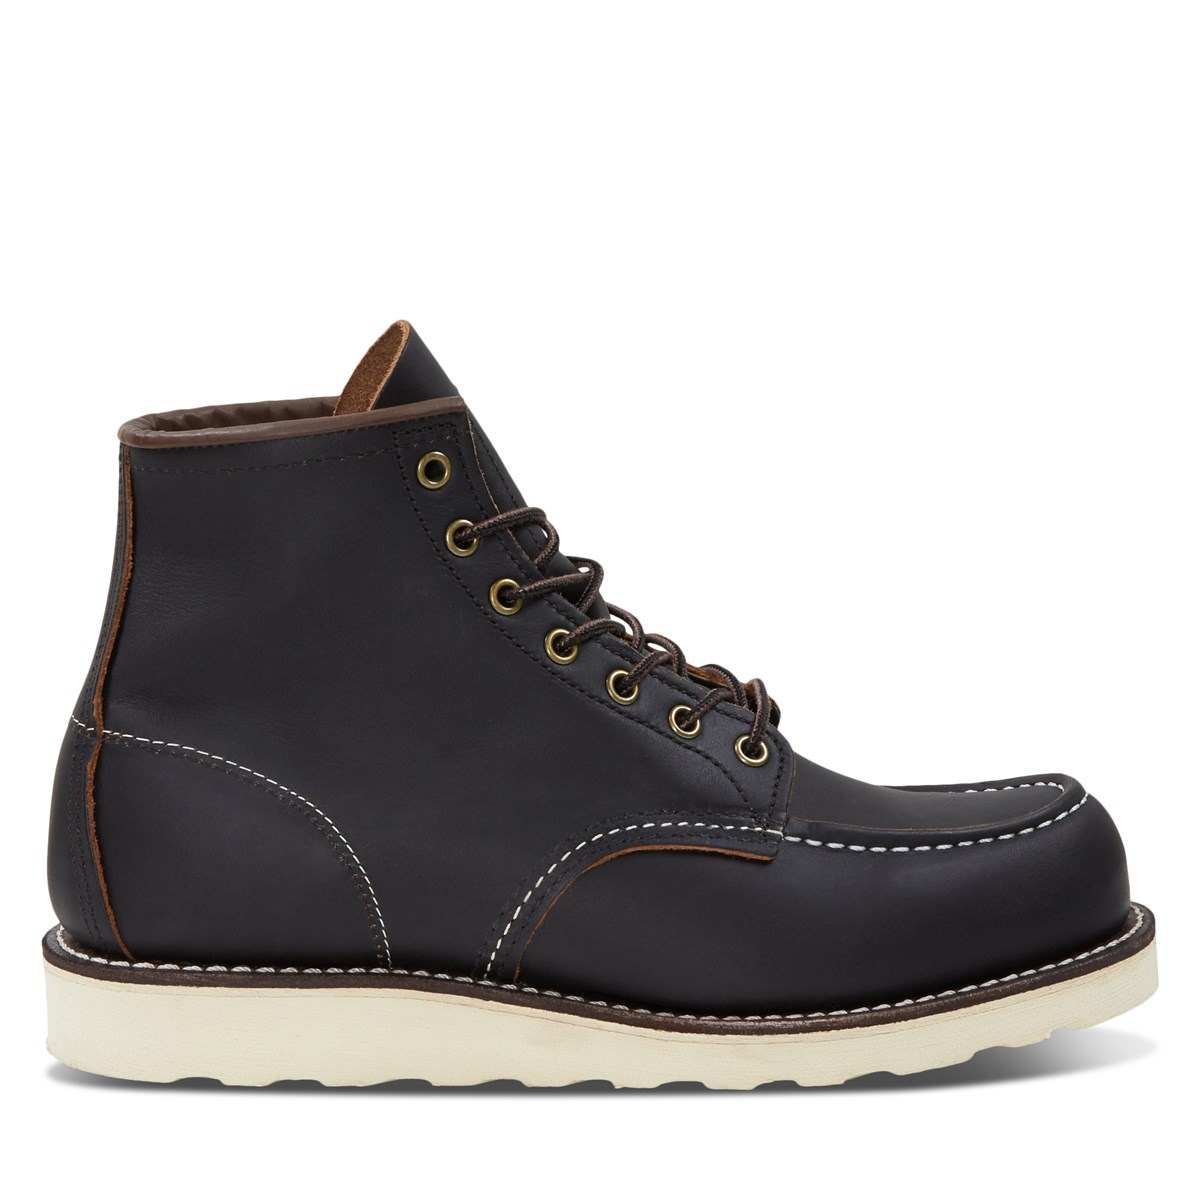 Men's 6-Inch Classic Moc Boots in Black